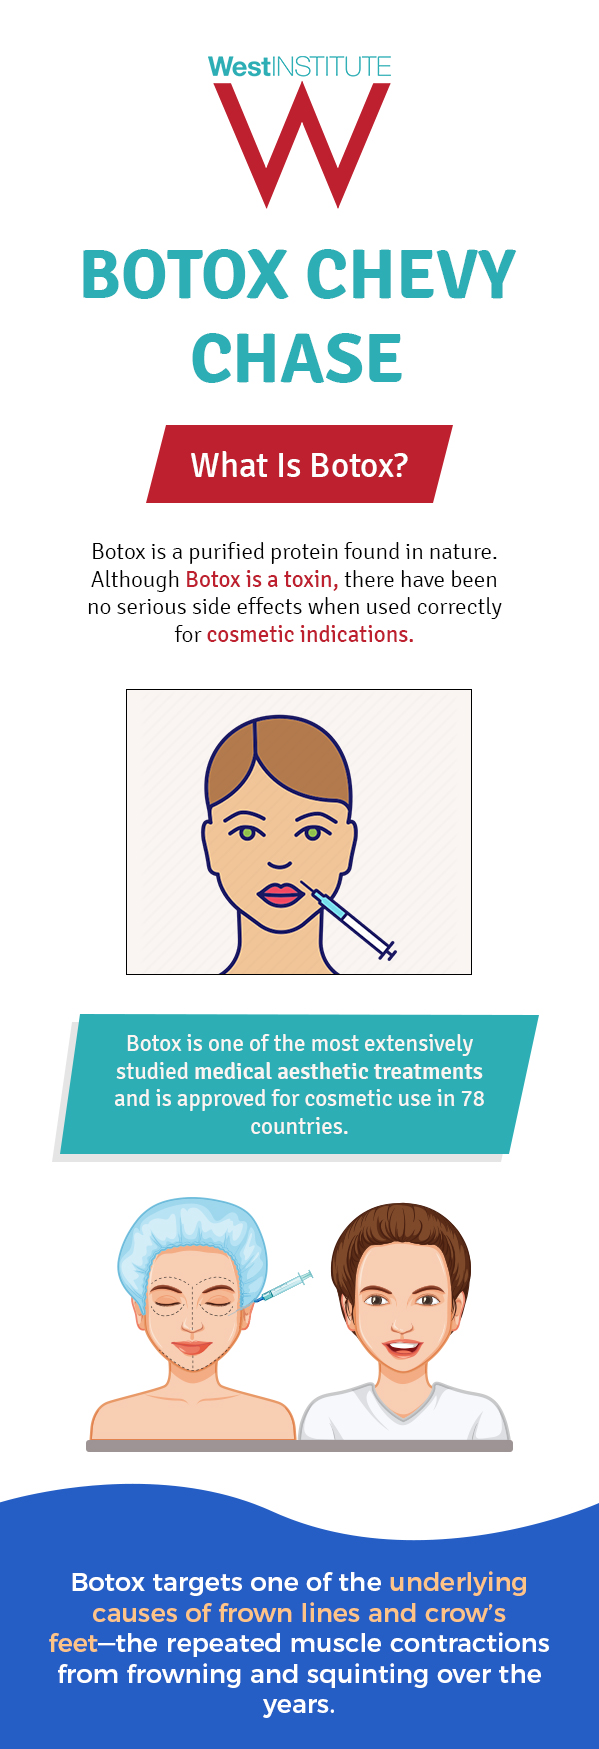 Choose The West Institute for the Most Effective Botox Treatment in Chevy Chase